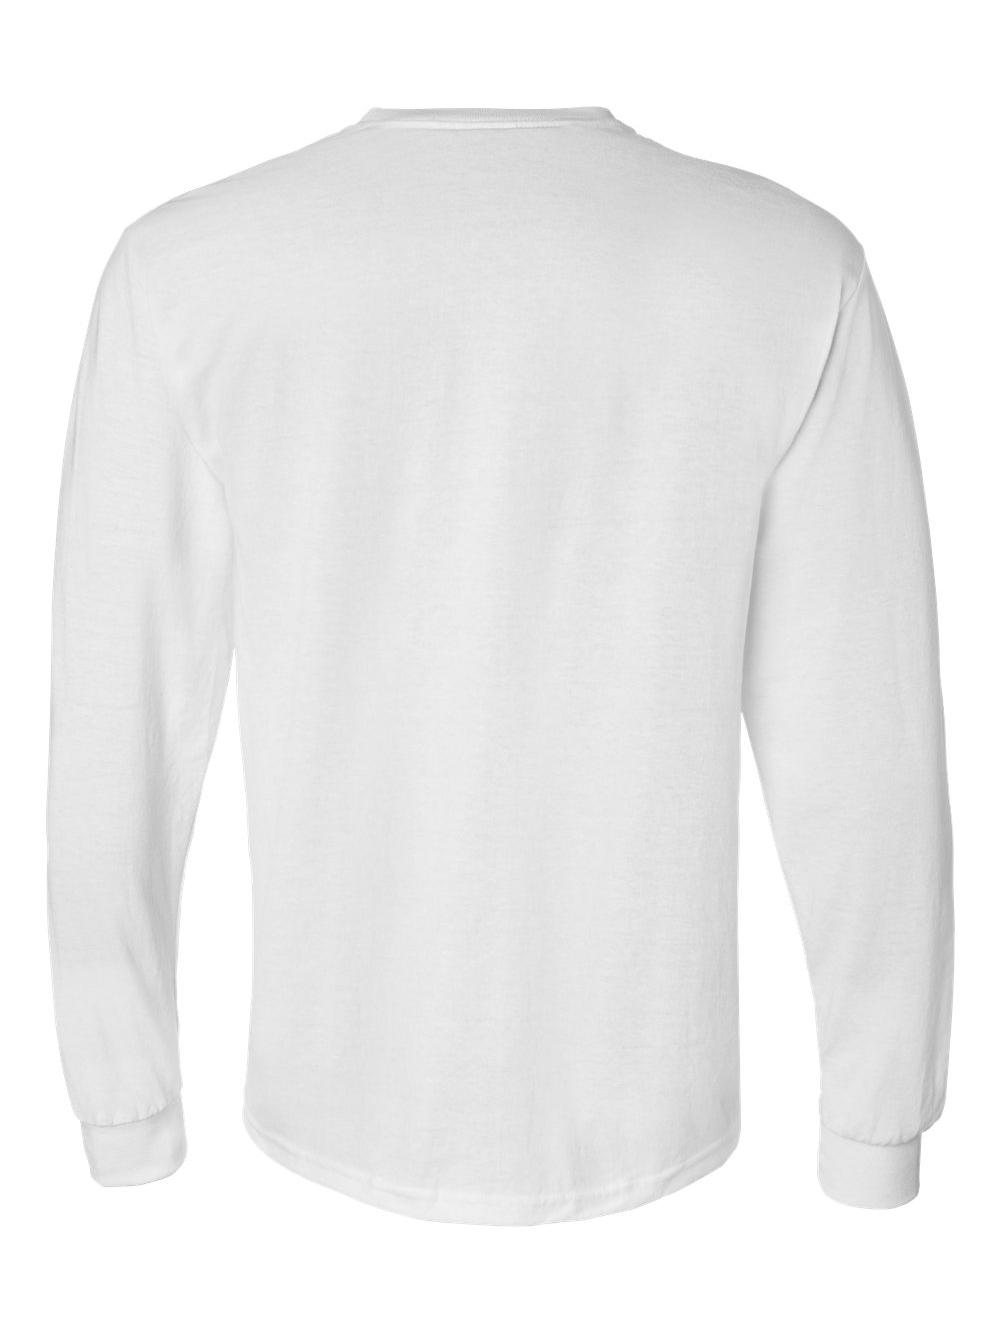 Gildan-DryBlend-50-50-Long-Sleeve-T-Shirt-8400 thumbnail 47